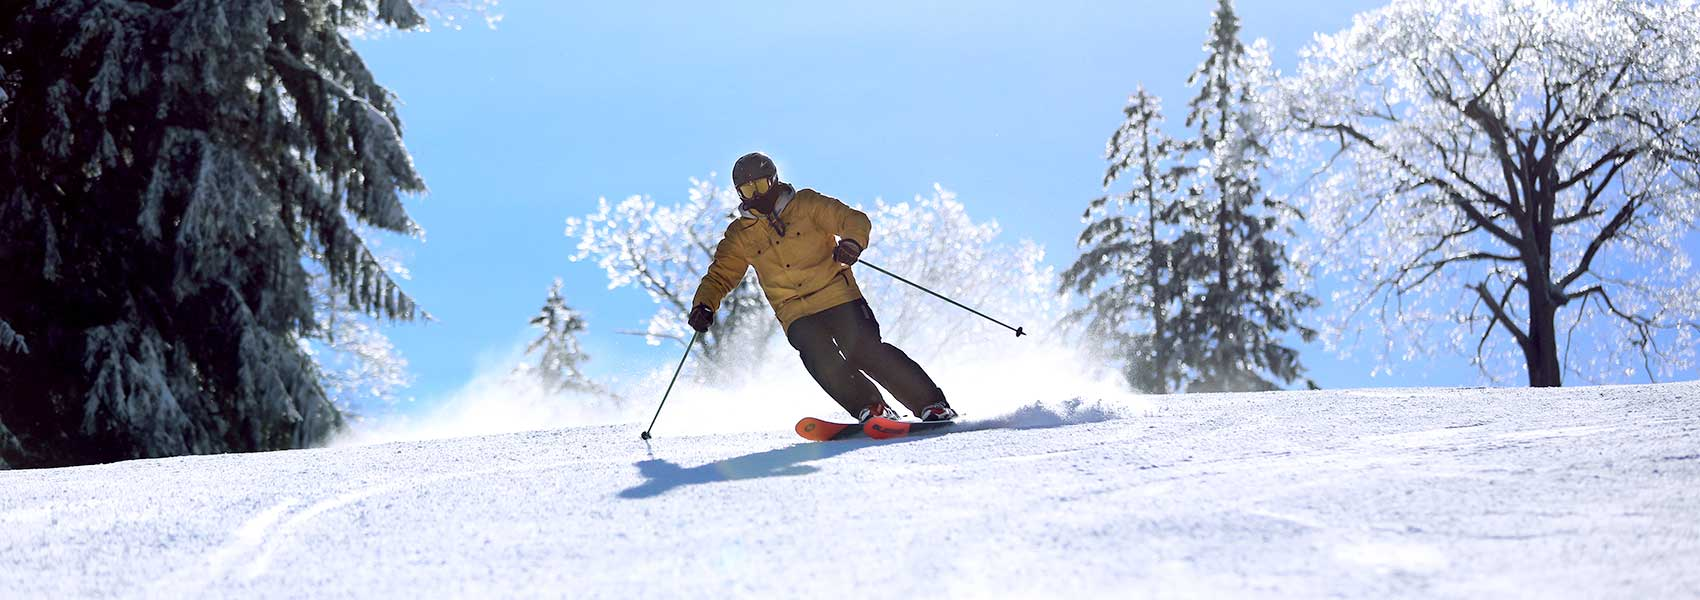 Skier on Upper Wildcat